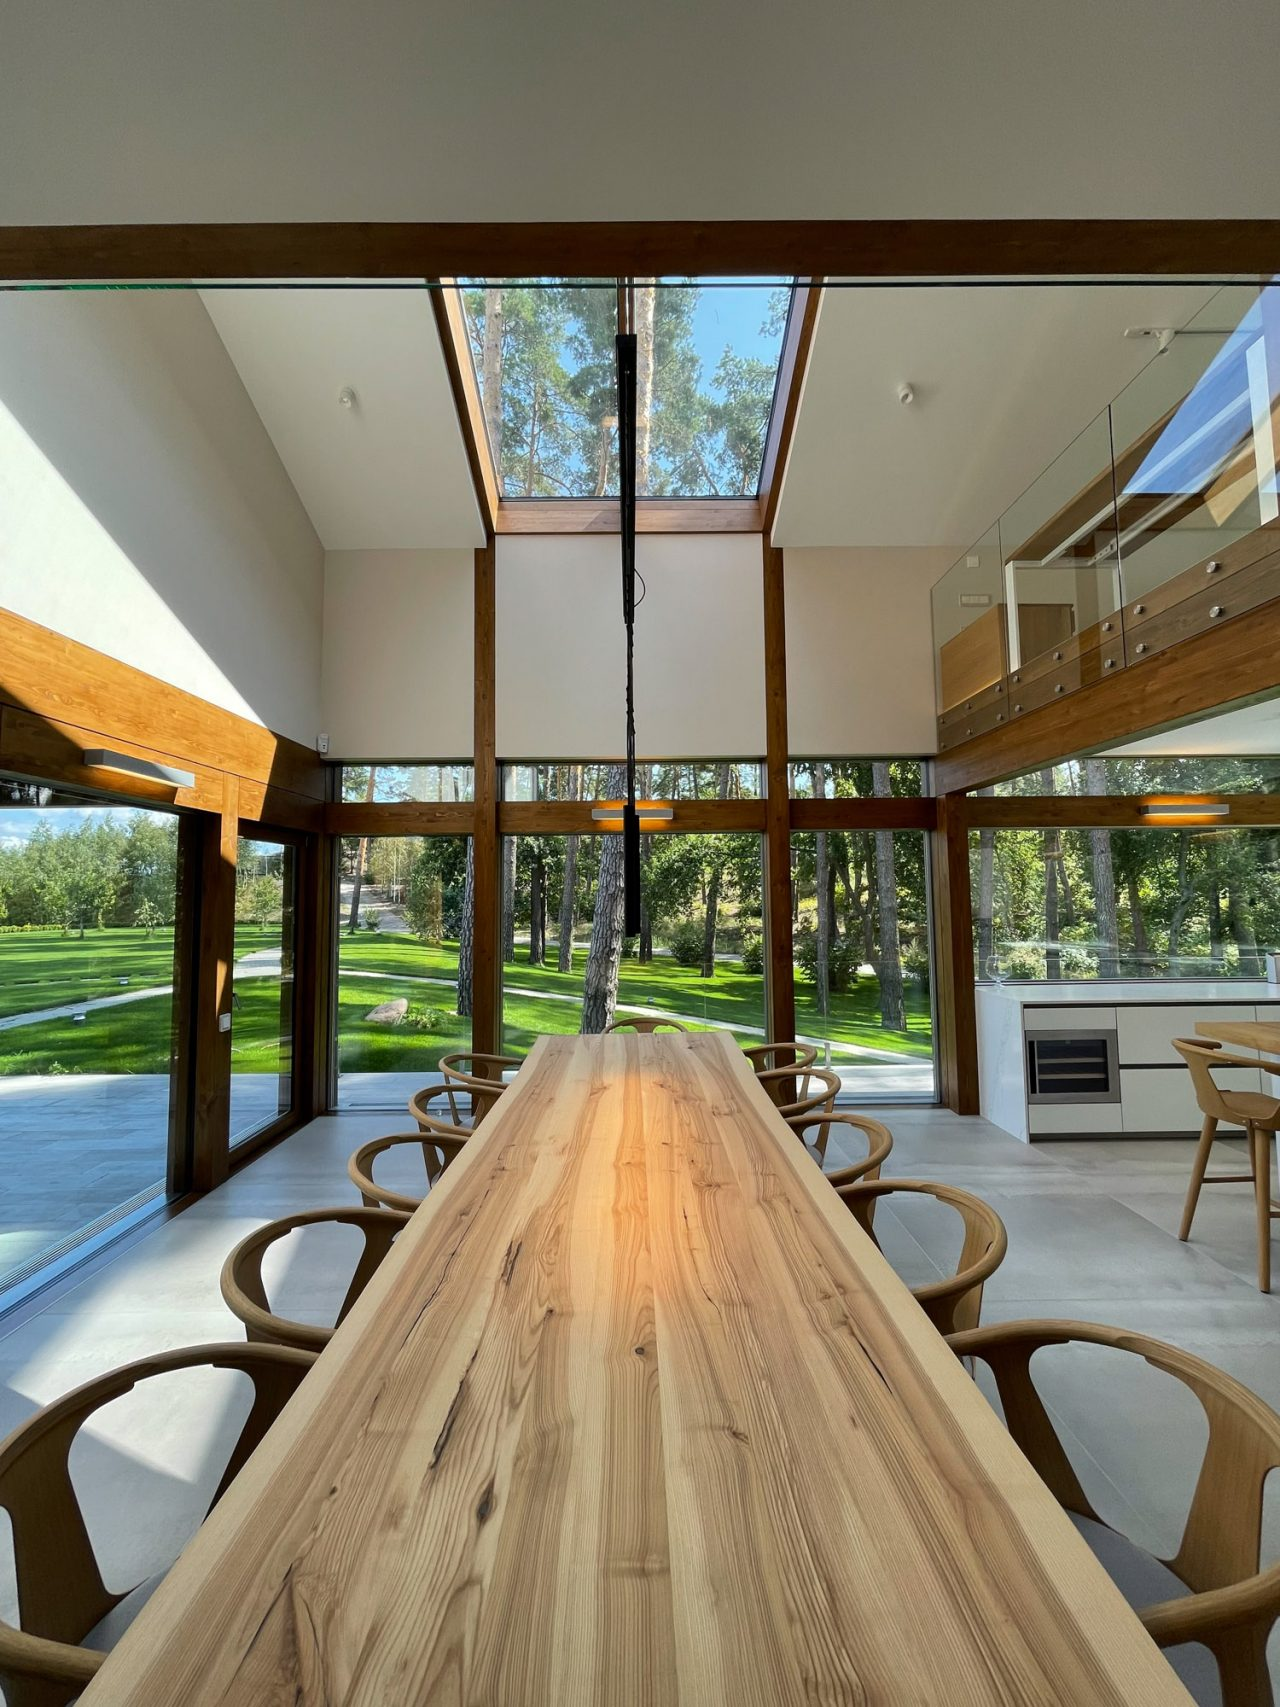 Hlass_house_KAGER - Hurii_05